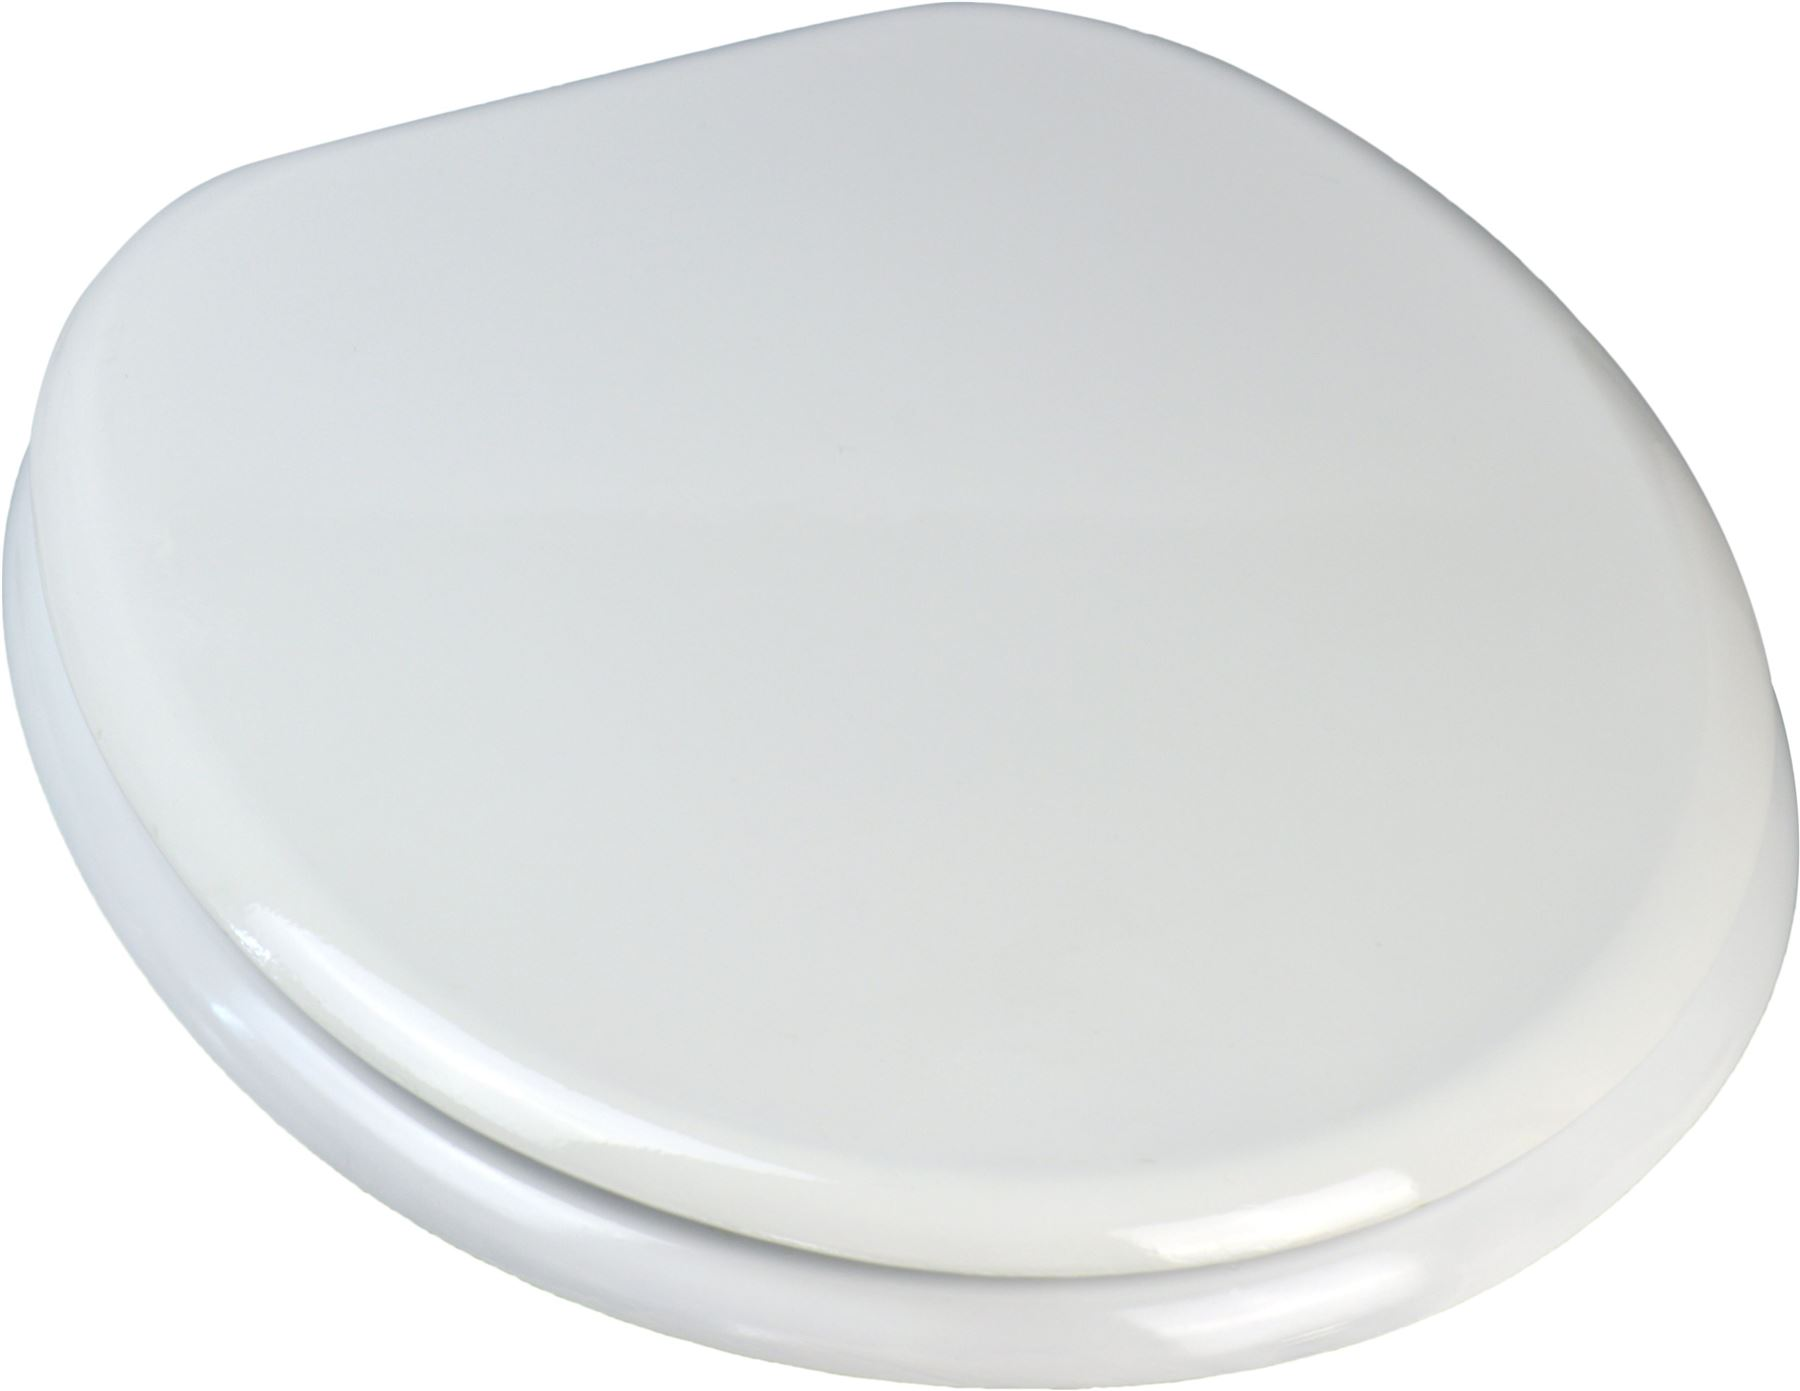 White Wooden Bathroom Toilet Seat Chrome Plated Hinges Fixings Included EBay